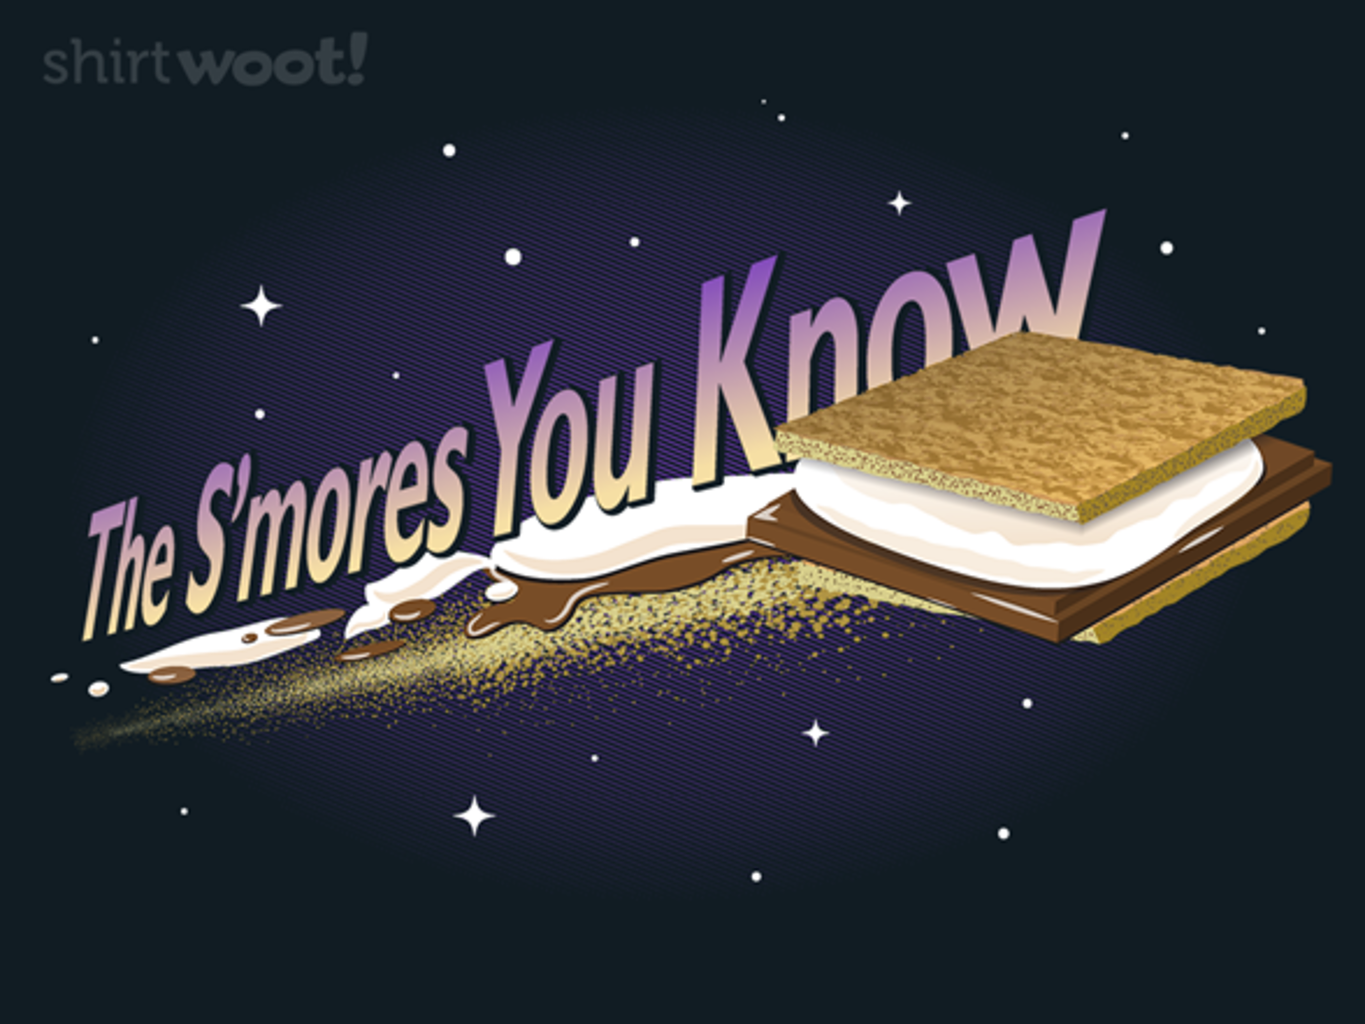 Woot!: The S'mores You Know - $15.00 + Free shipping